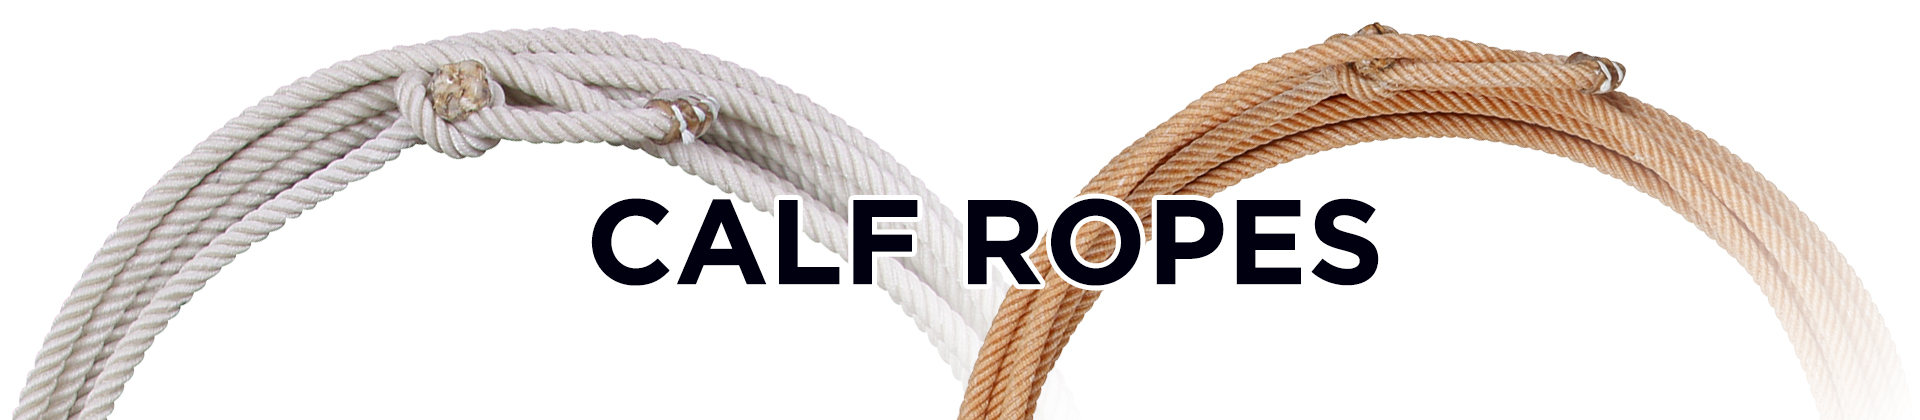 Rattler Rope - Calsf Ropes